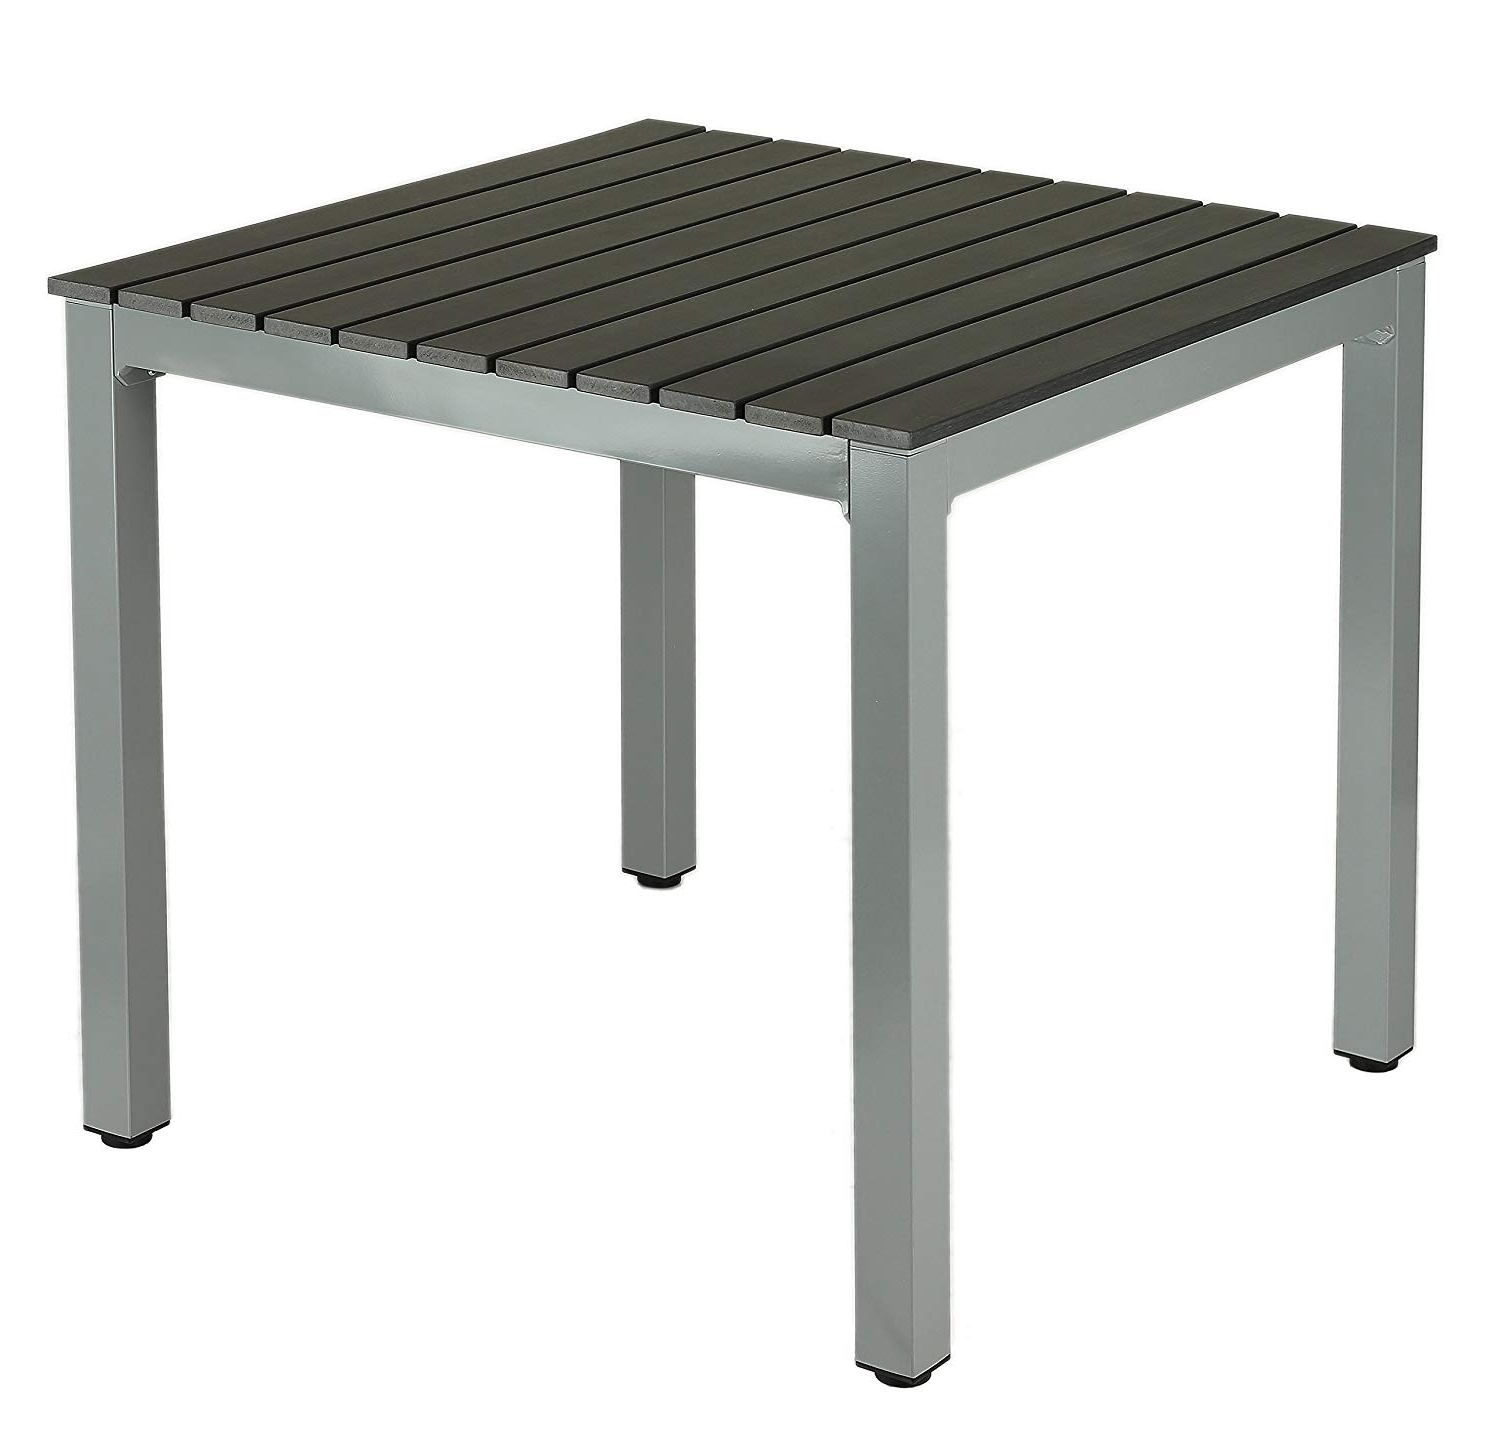 Amazon : Jaxon Aluminum Outdoor Table In Poly Wood, Silver/slate Within Popular Jaxon Grey Wood Side Chairs (View 1 of 20)